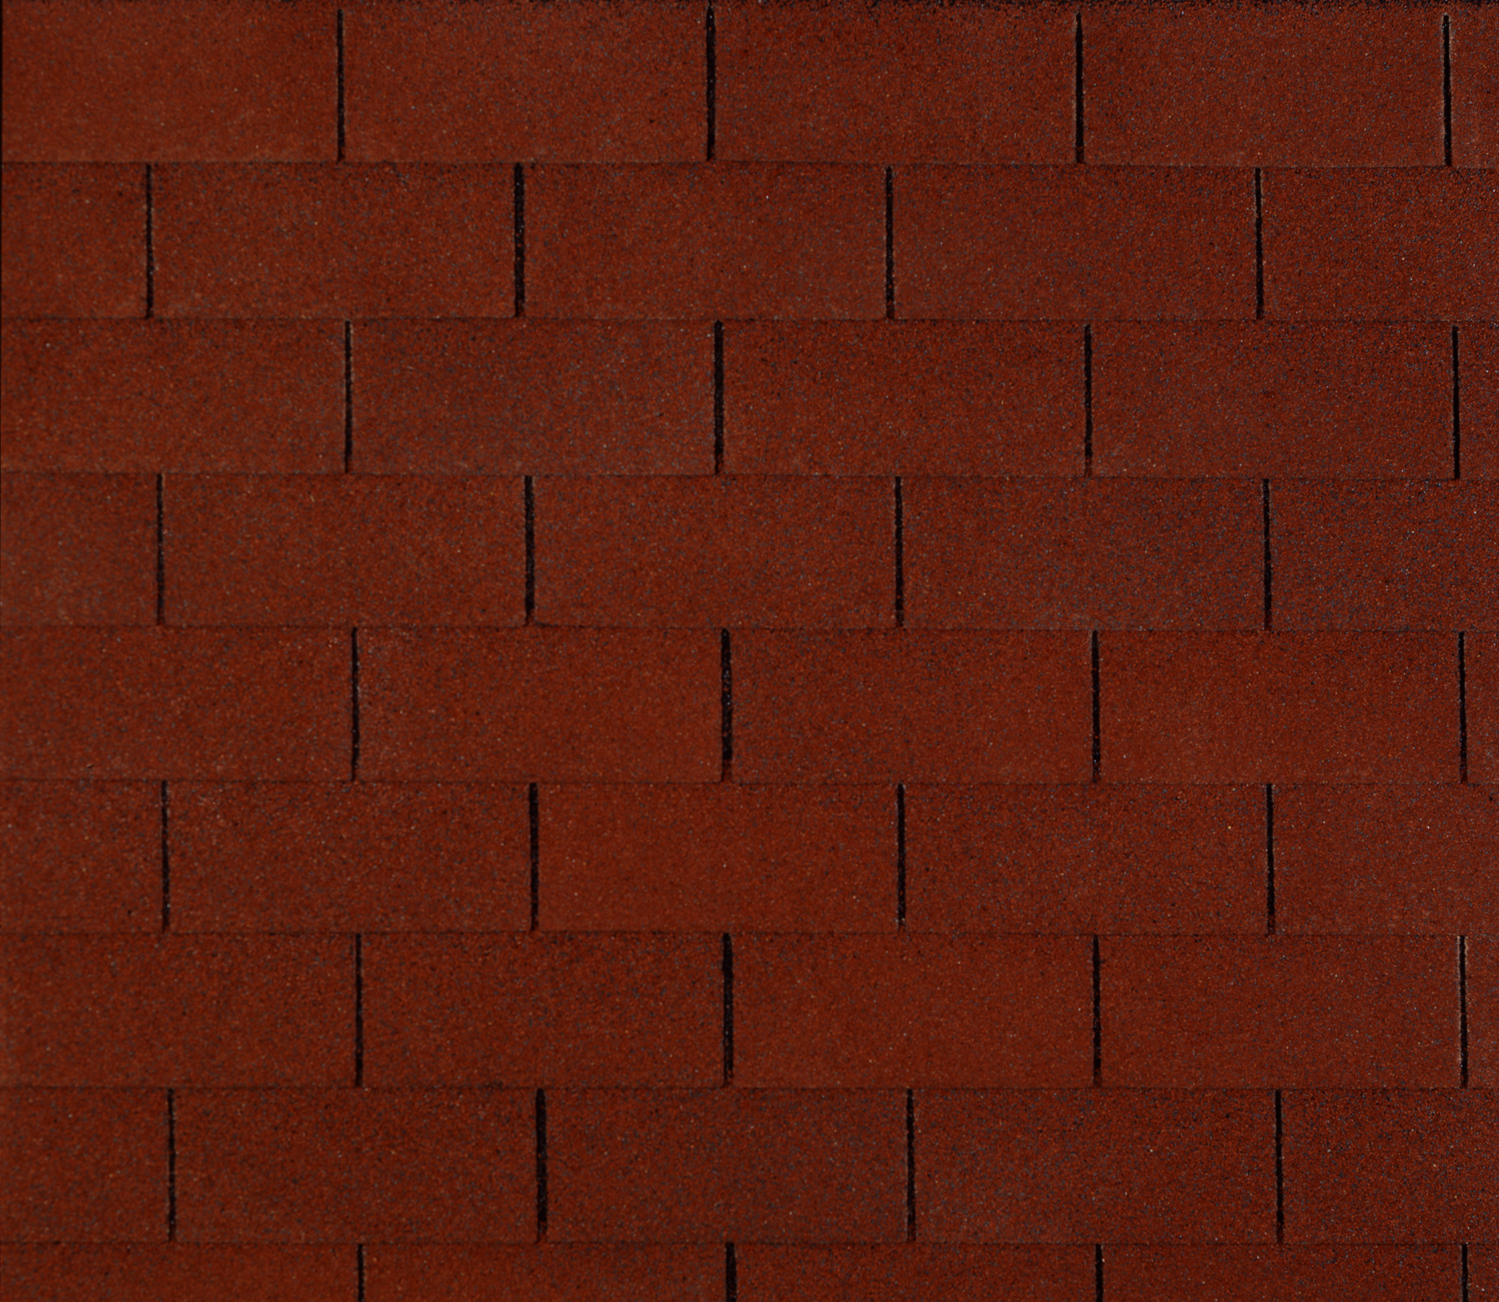 TAMKO Tile Red Image